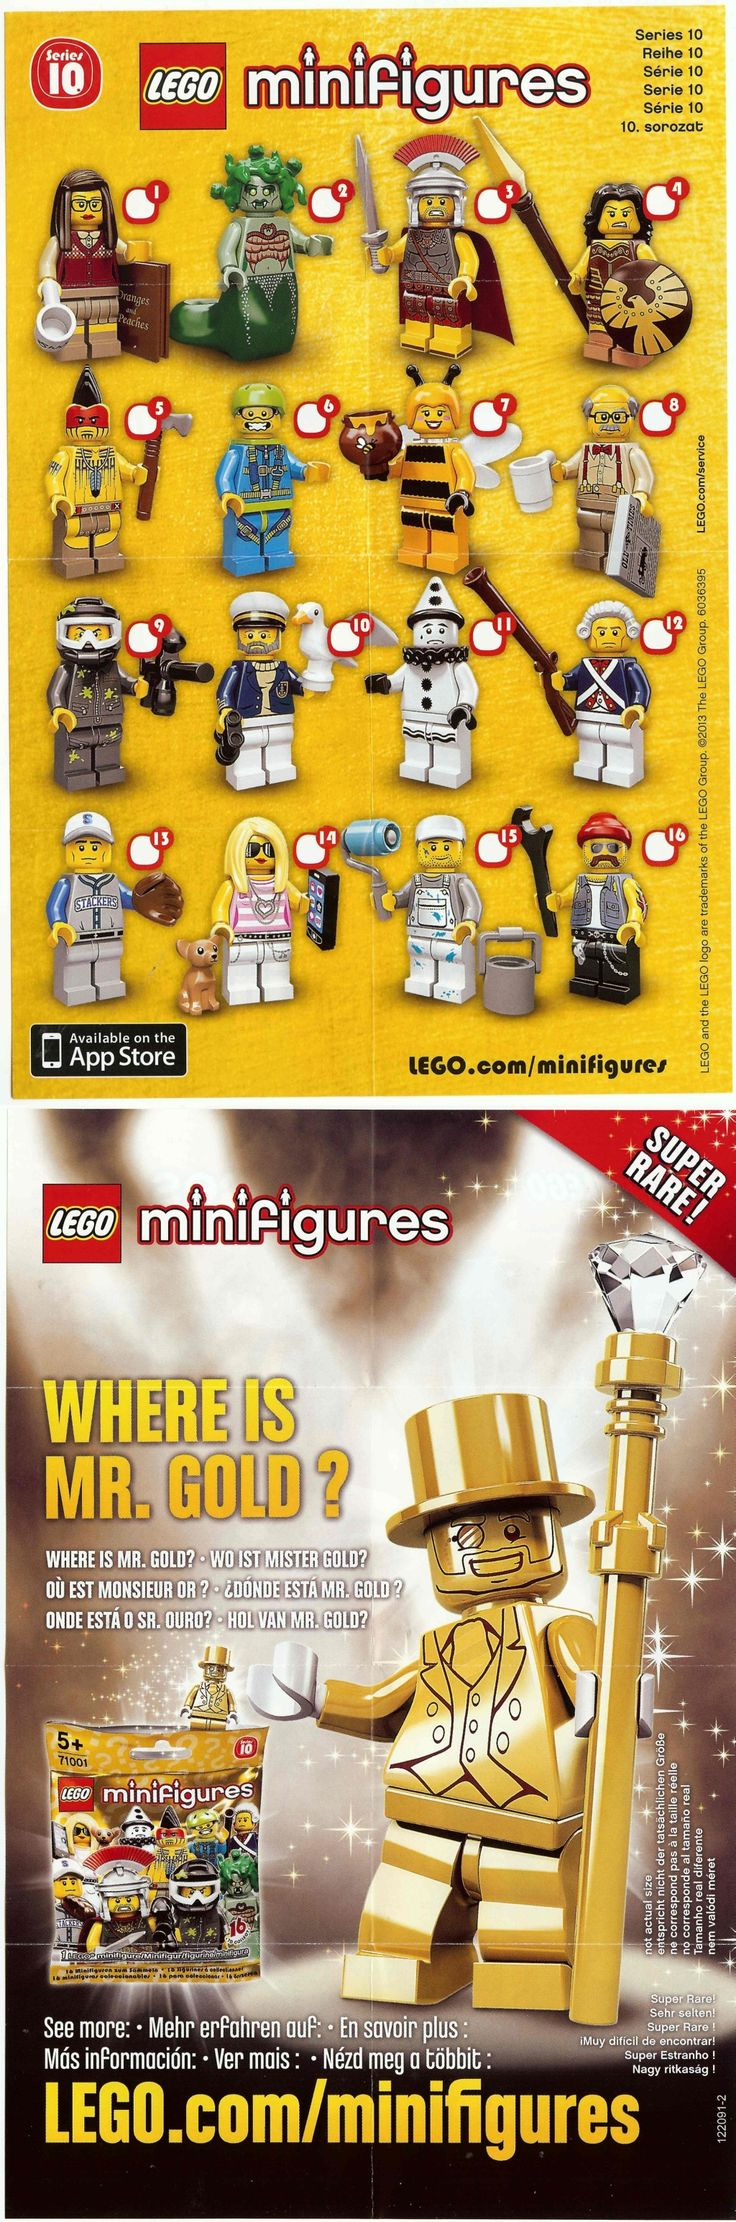 Please note: This is speculative and not official.-  Minifigures Series 10